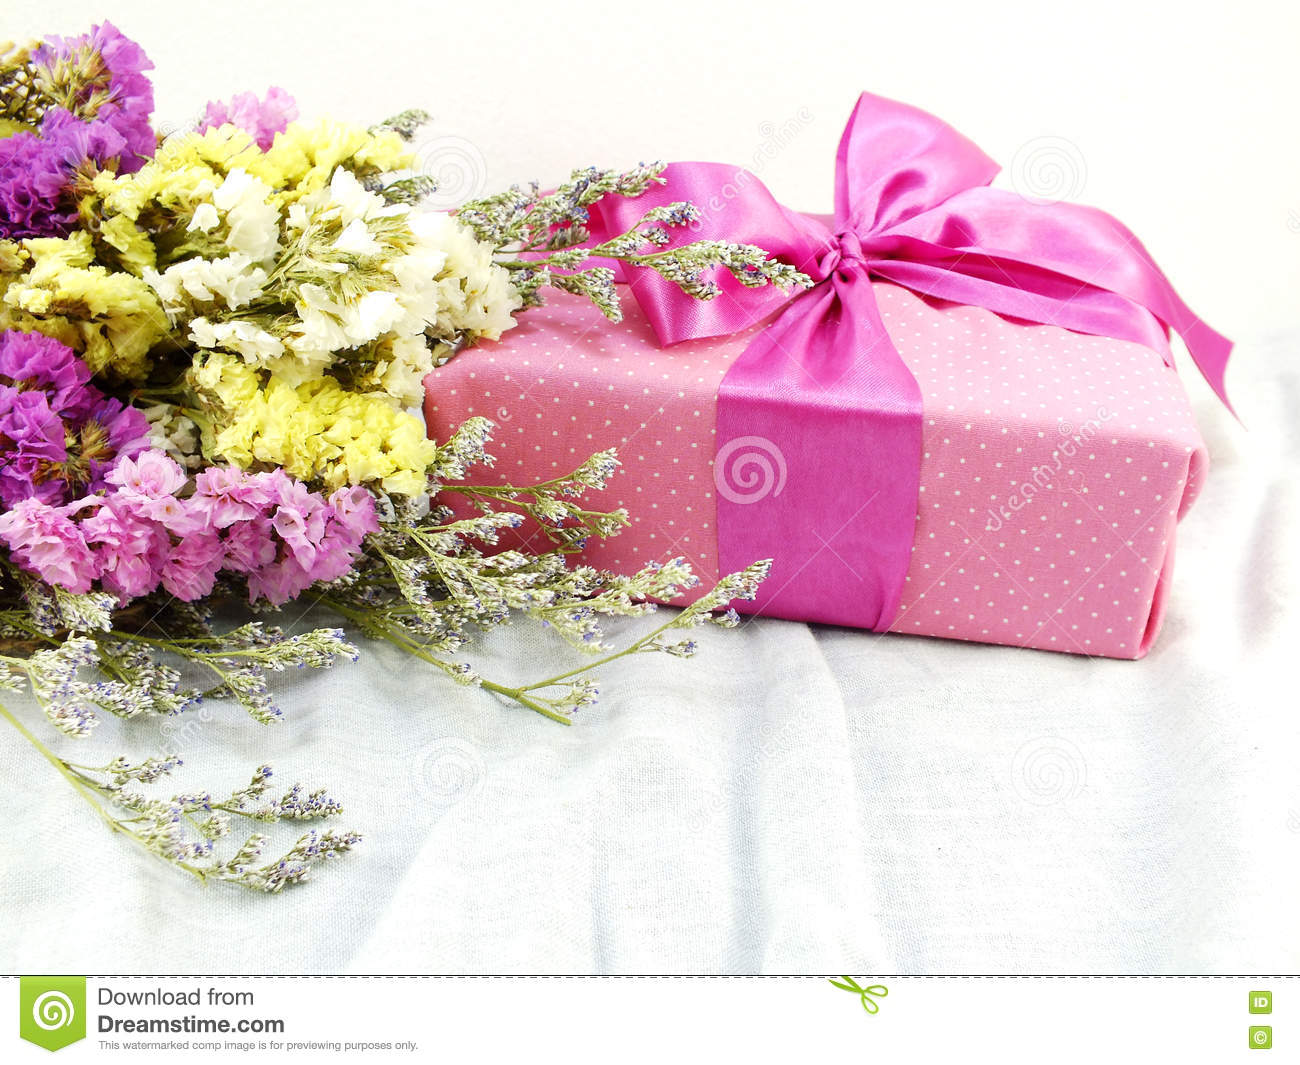 Craft Paper Gift Box With Ribbon Bow And Flower Bouquet With Fabric